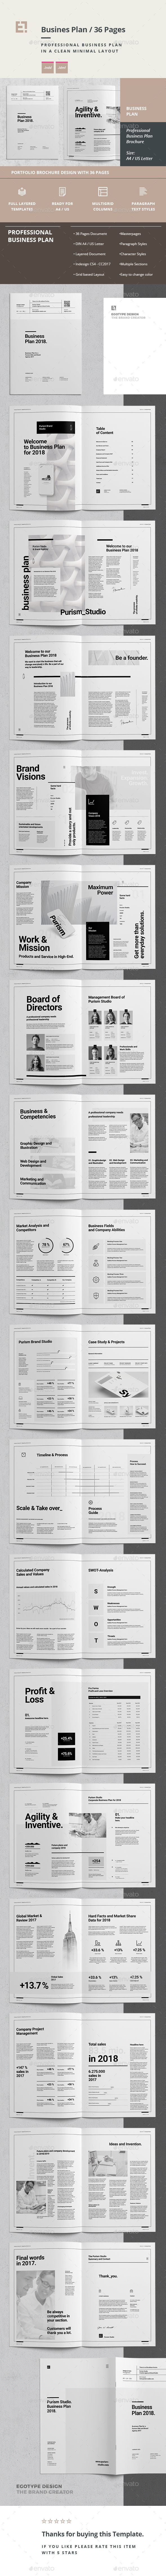 Professional Business Plan and Company Profile Template InDesign INDD - A4 and US Letter Size - 36 Custom Pages